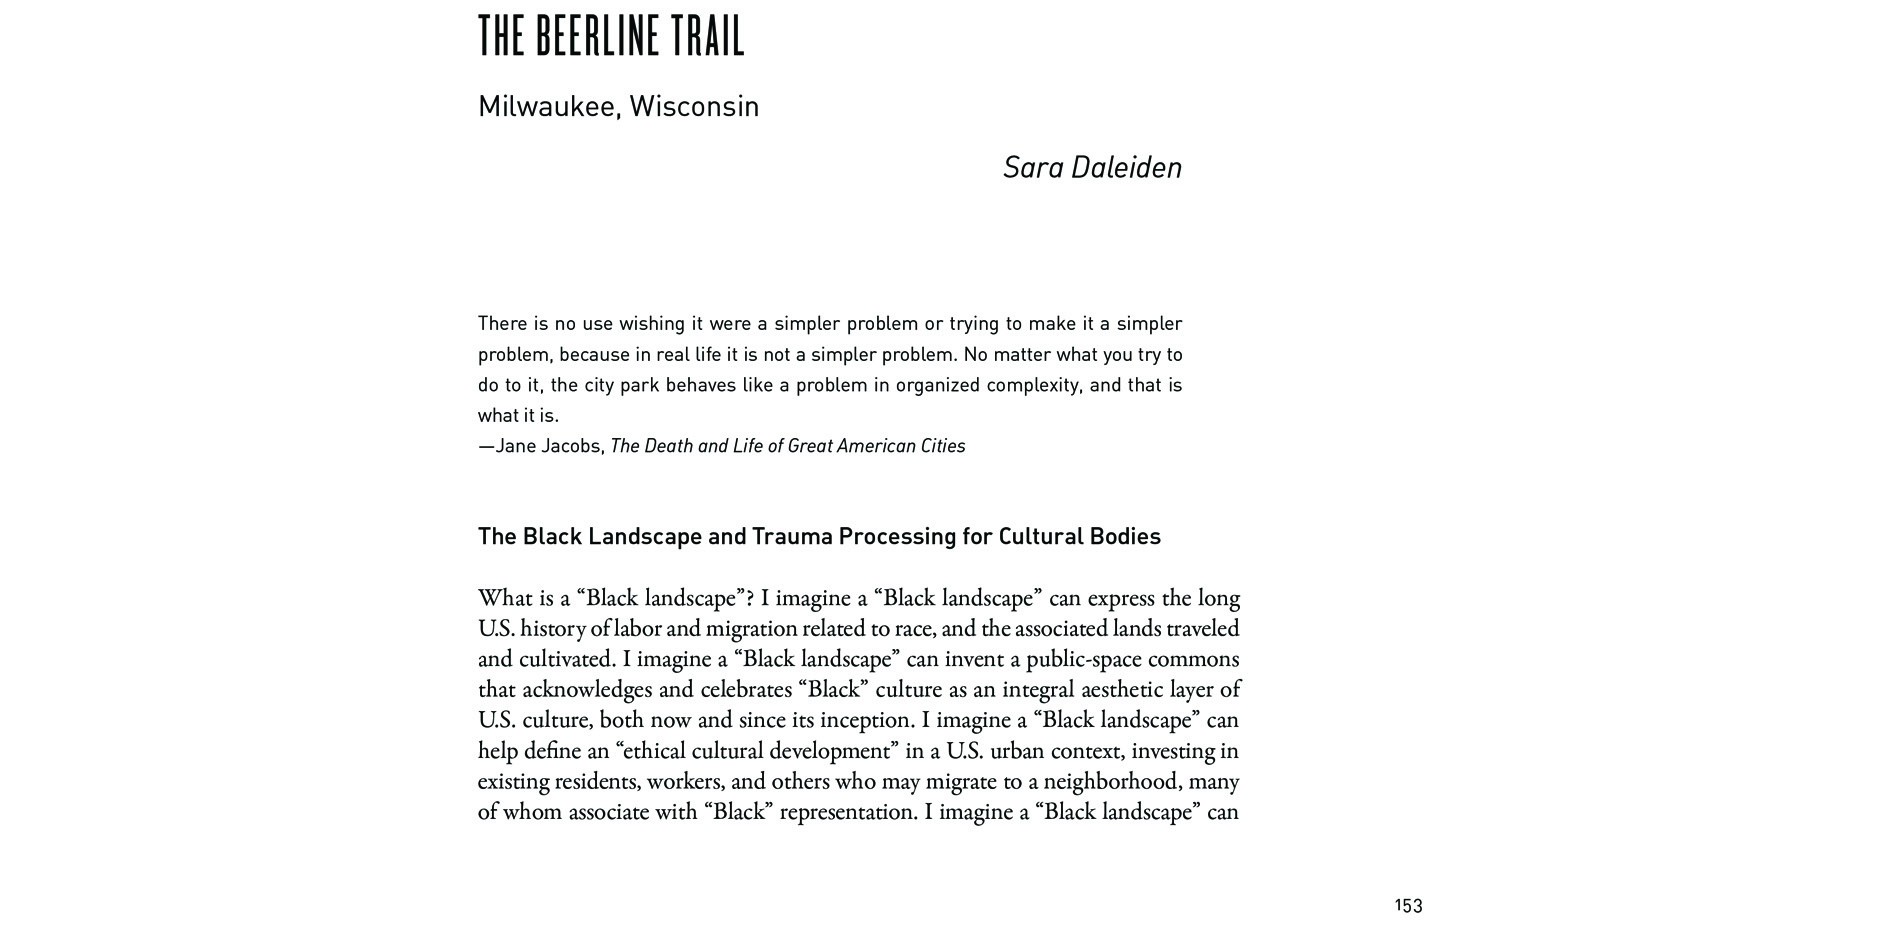 Black Landscapes Matter, The Beerline Trail: Milwaukee, Wisconsin (pg. 153)